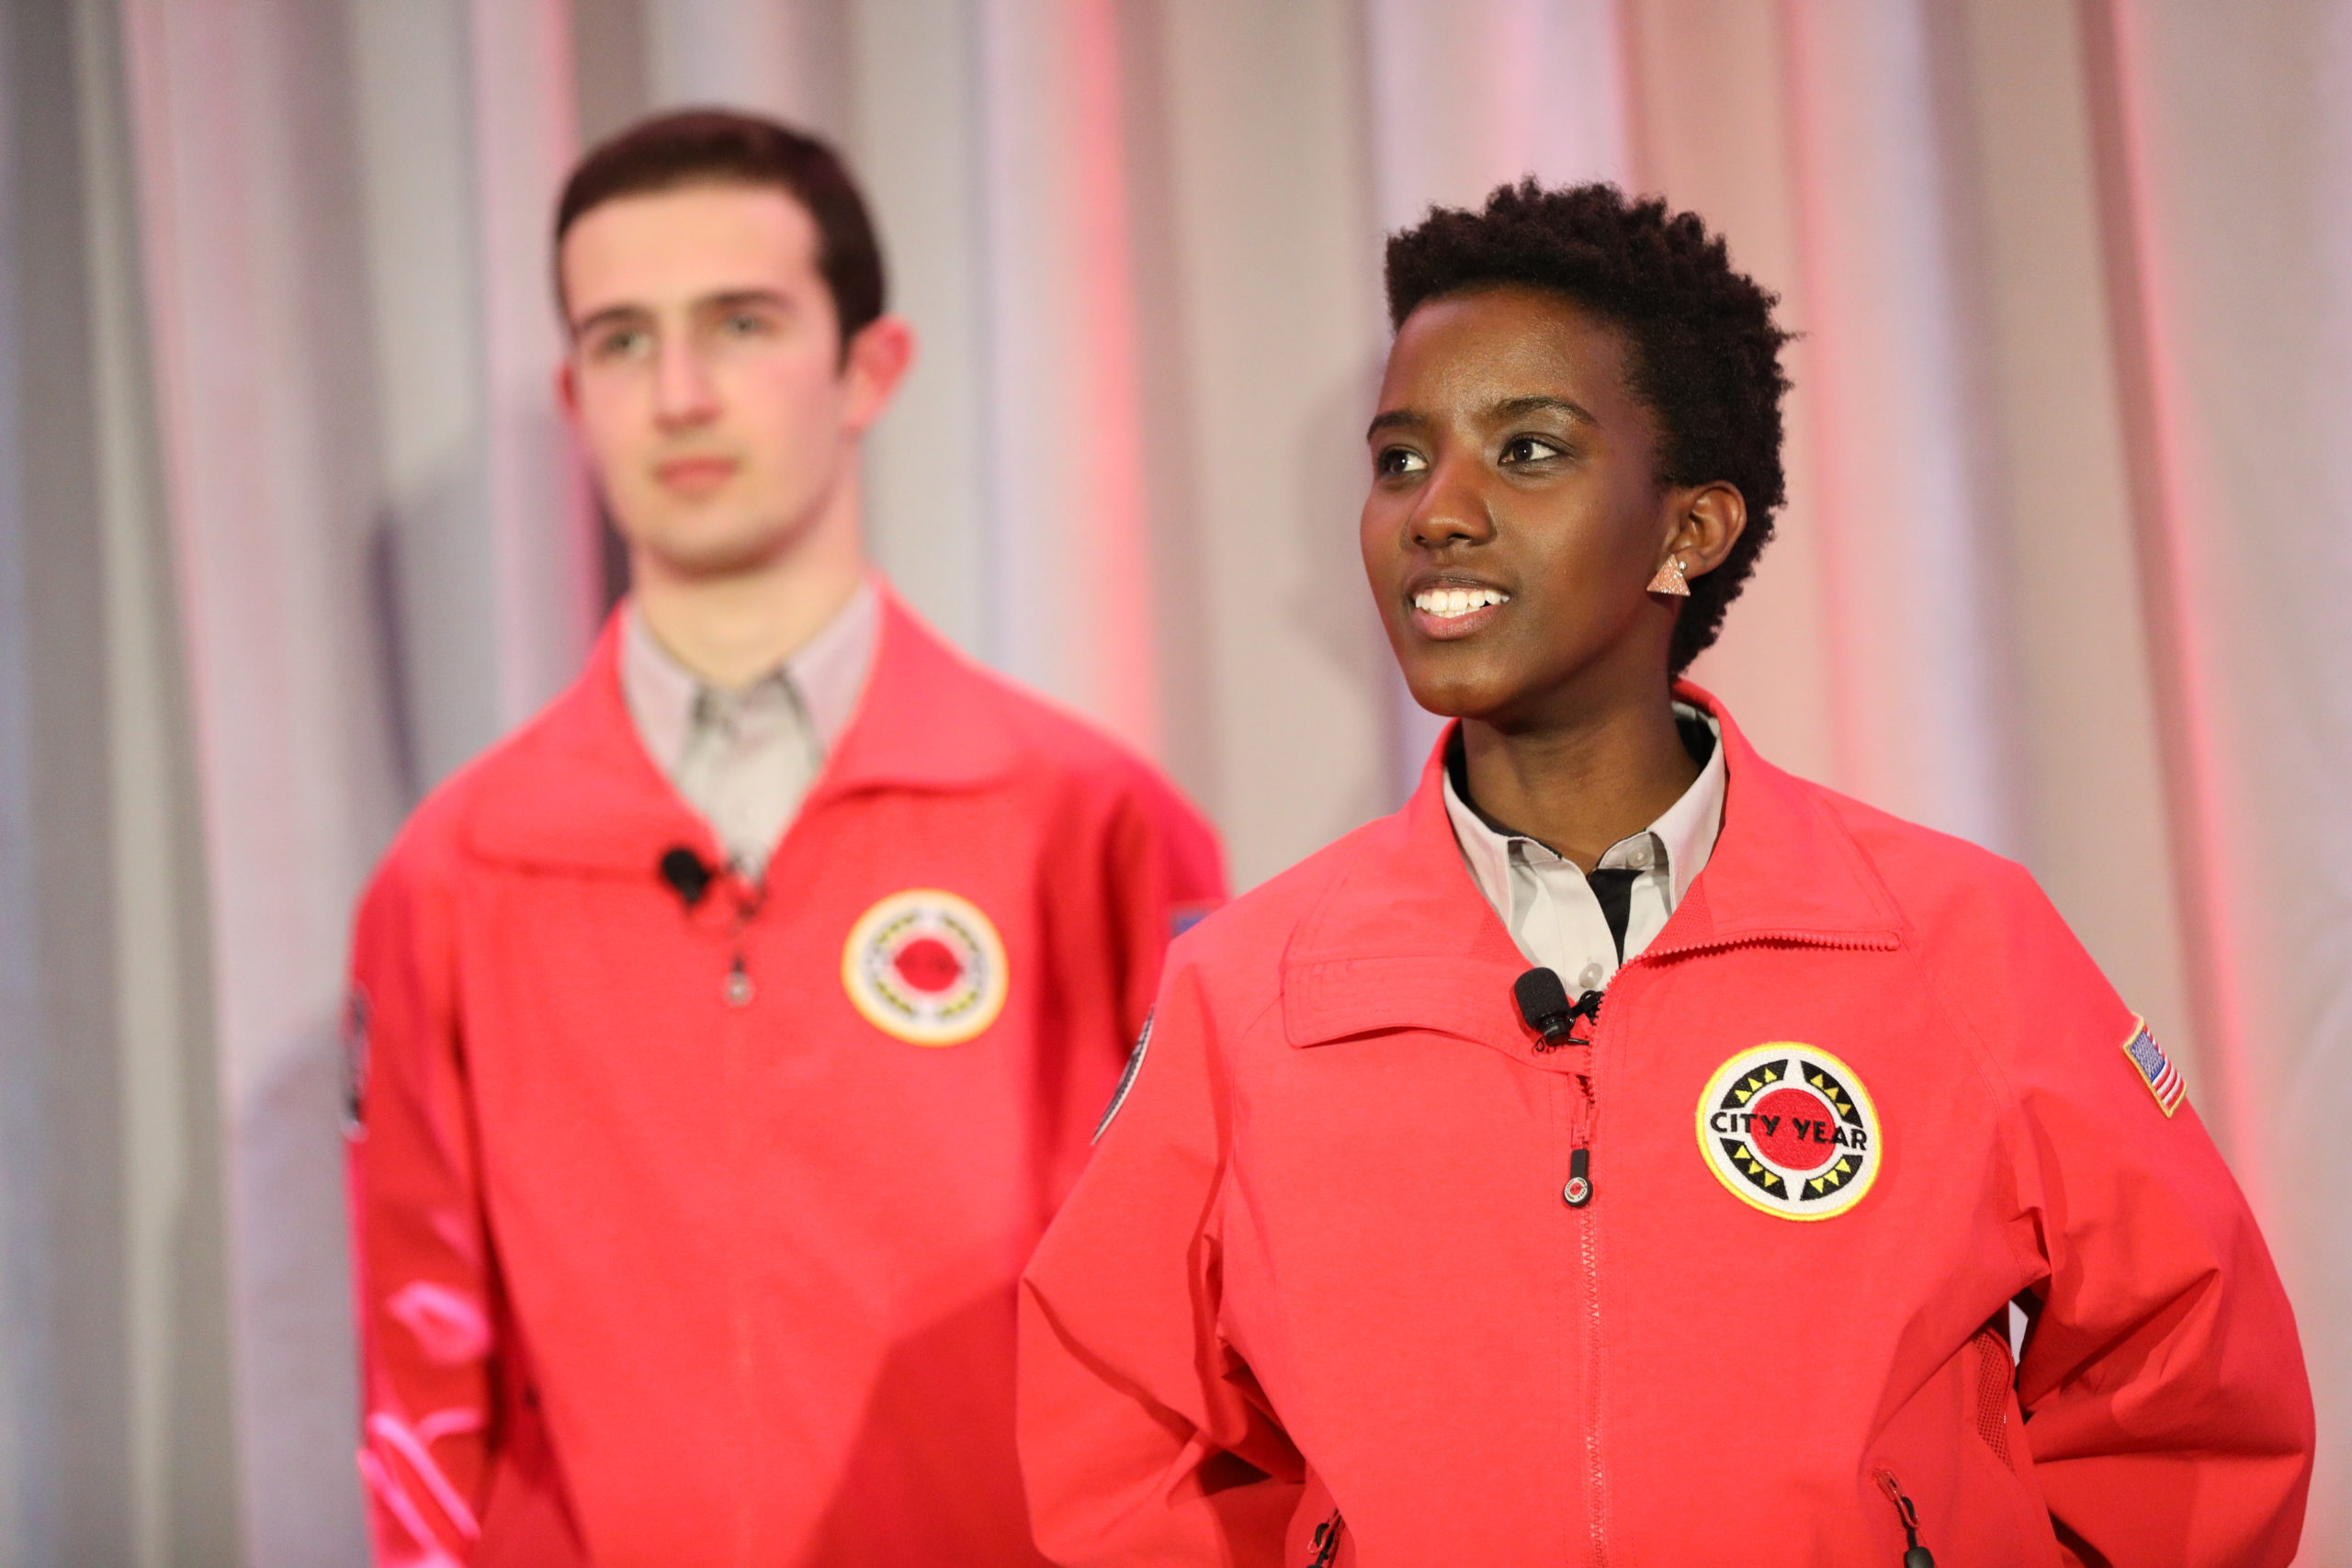 AmeriCorps members proudly present their service to the audience.